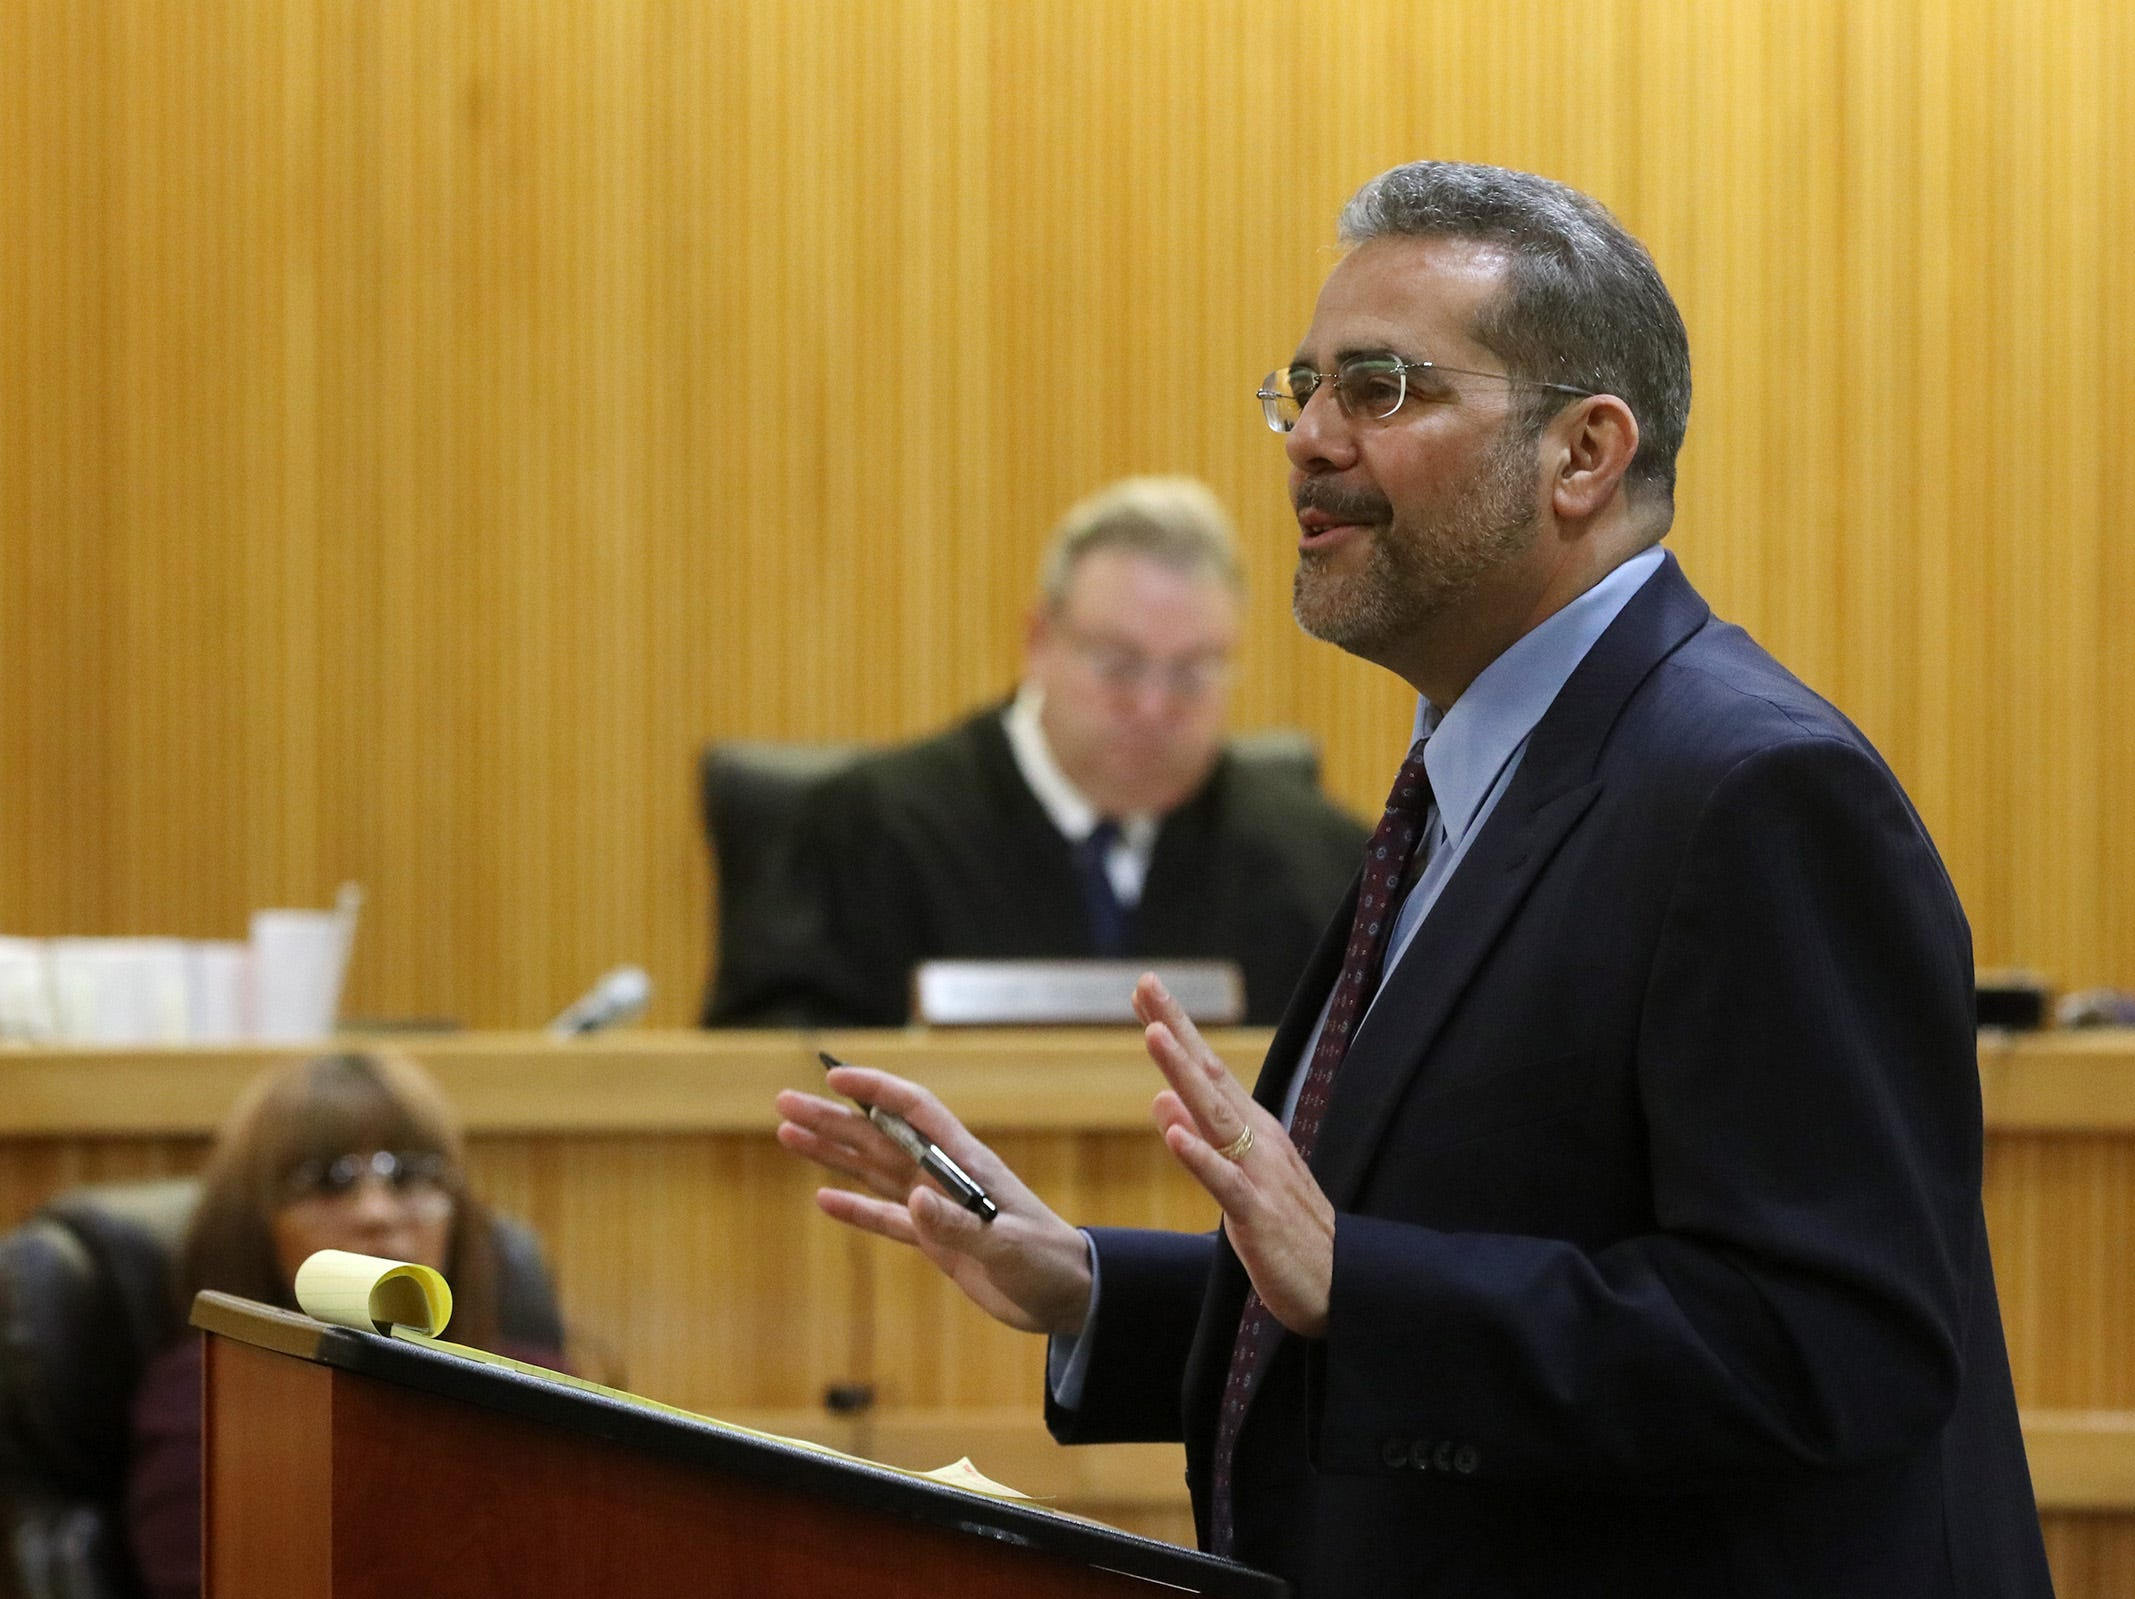 Carlos Diaz-Cobo, defense attorney, addresses the jury during opening statements as Liam McAtasney, who is charged with the murder of former high school classmate, Sarah Stern, appears for the first day of trial before Superior Court Judge Richard W. English at the Monmouth County Courthouse in Freehold, NJ Wednesday January 23, 2019.